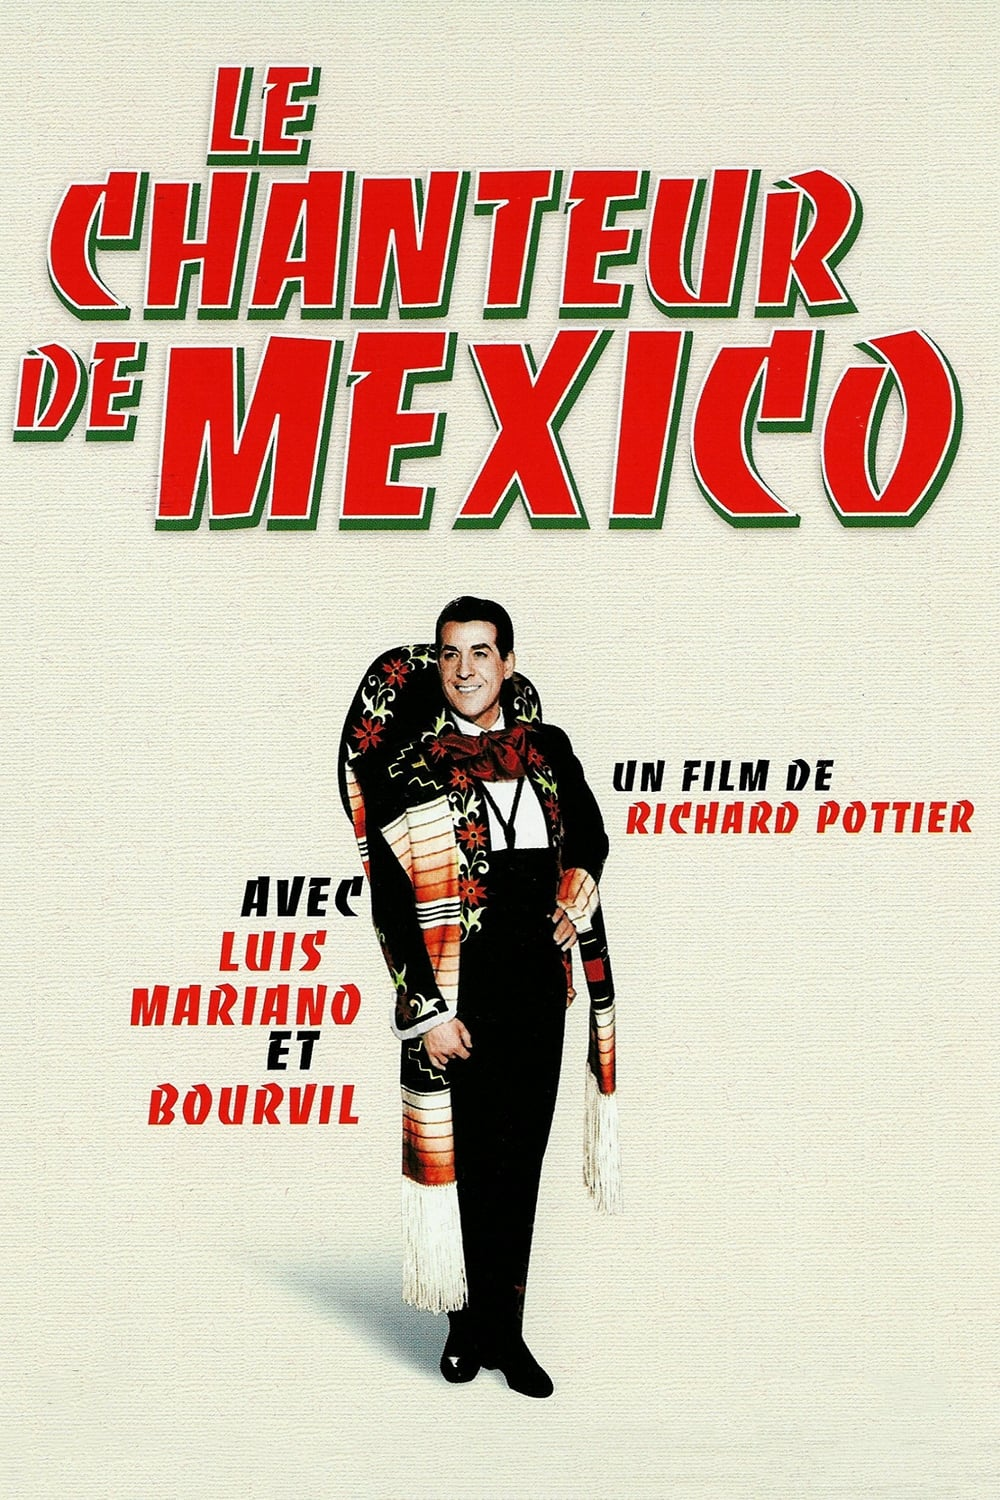 Le chanteur de Mexico (1957)